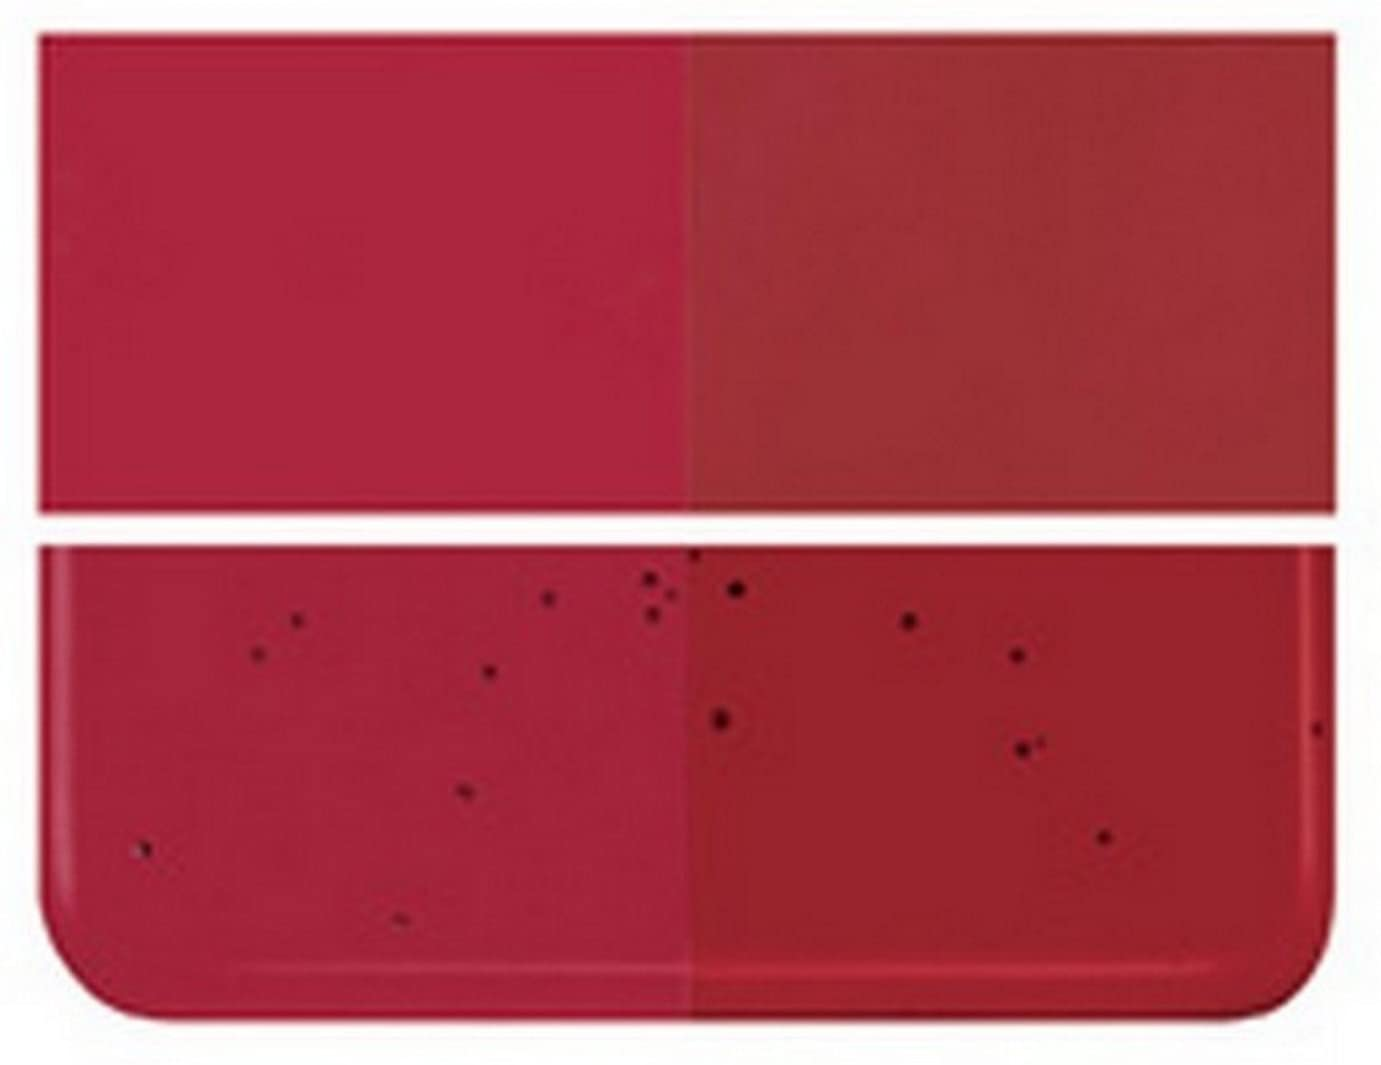 Fusible / Stained Glass 90coe Tested Compatible :: Bullseye Garnet RED Dbl-roll FUS :: (1 - 8 X 10 Piece) By Stallings Stained Glass